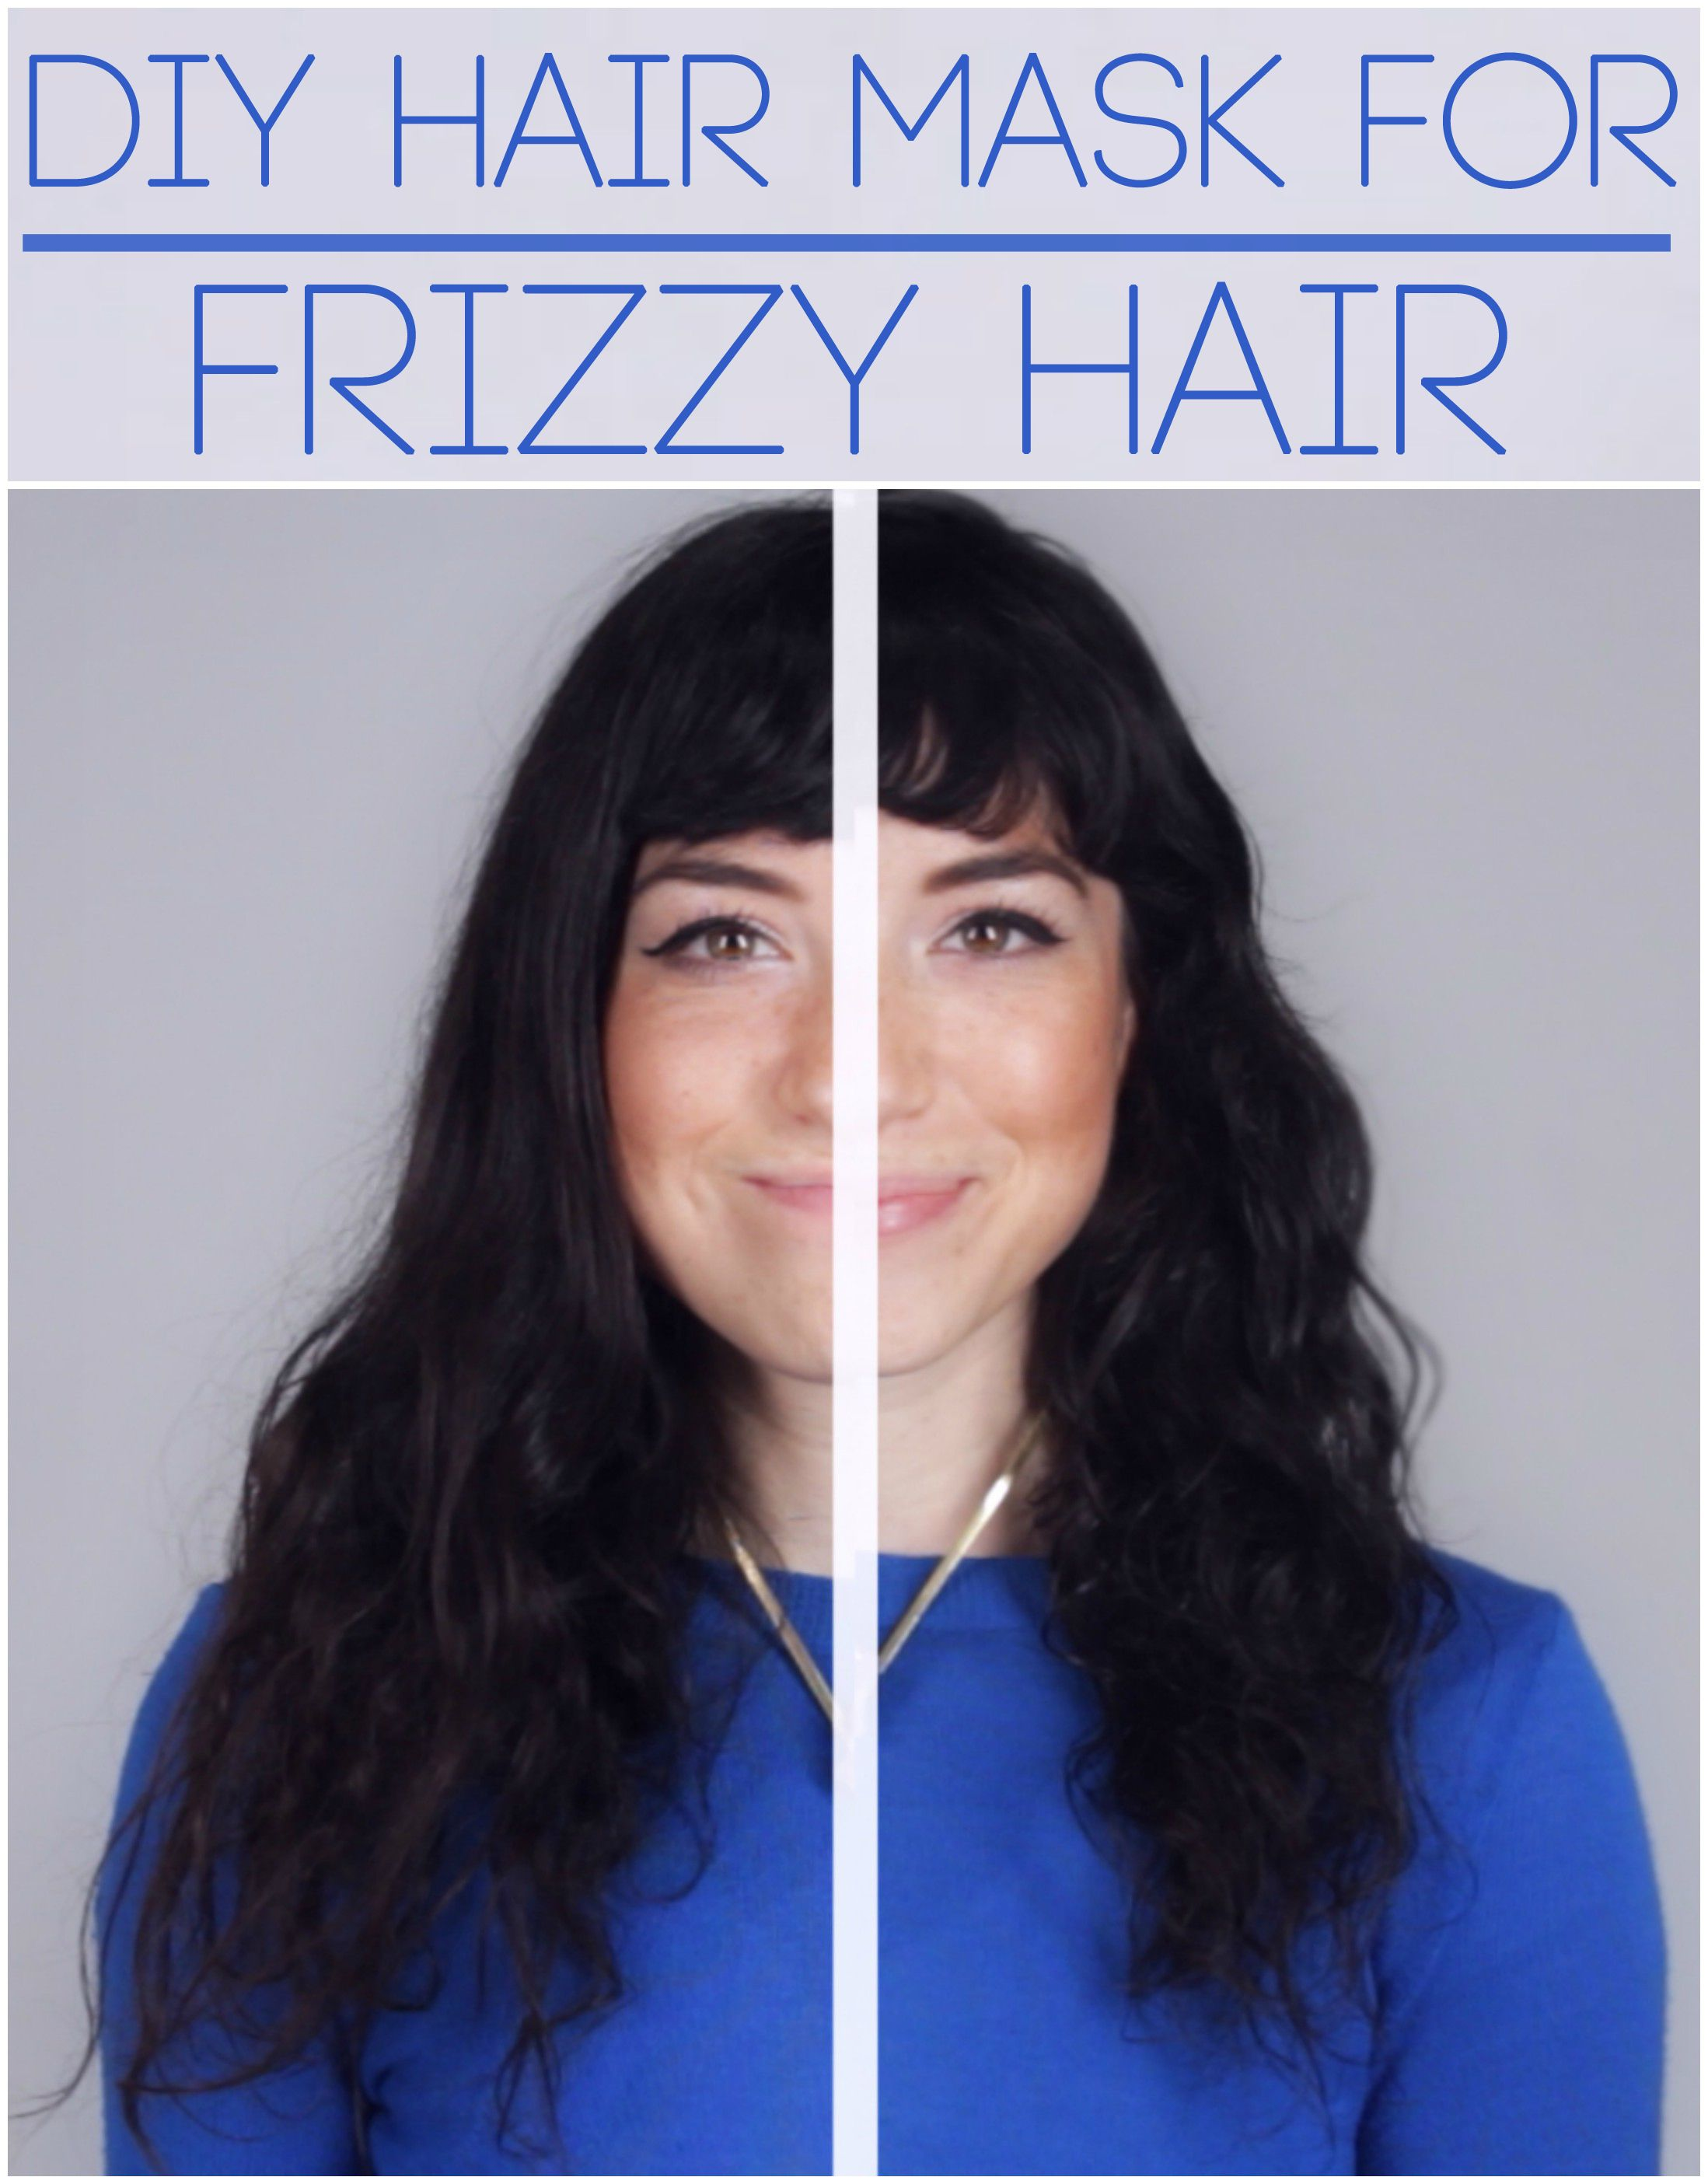 Diy Hair Mask For Frizzy Hair 1 Sliced Banana 2 Tbsp Plain